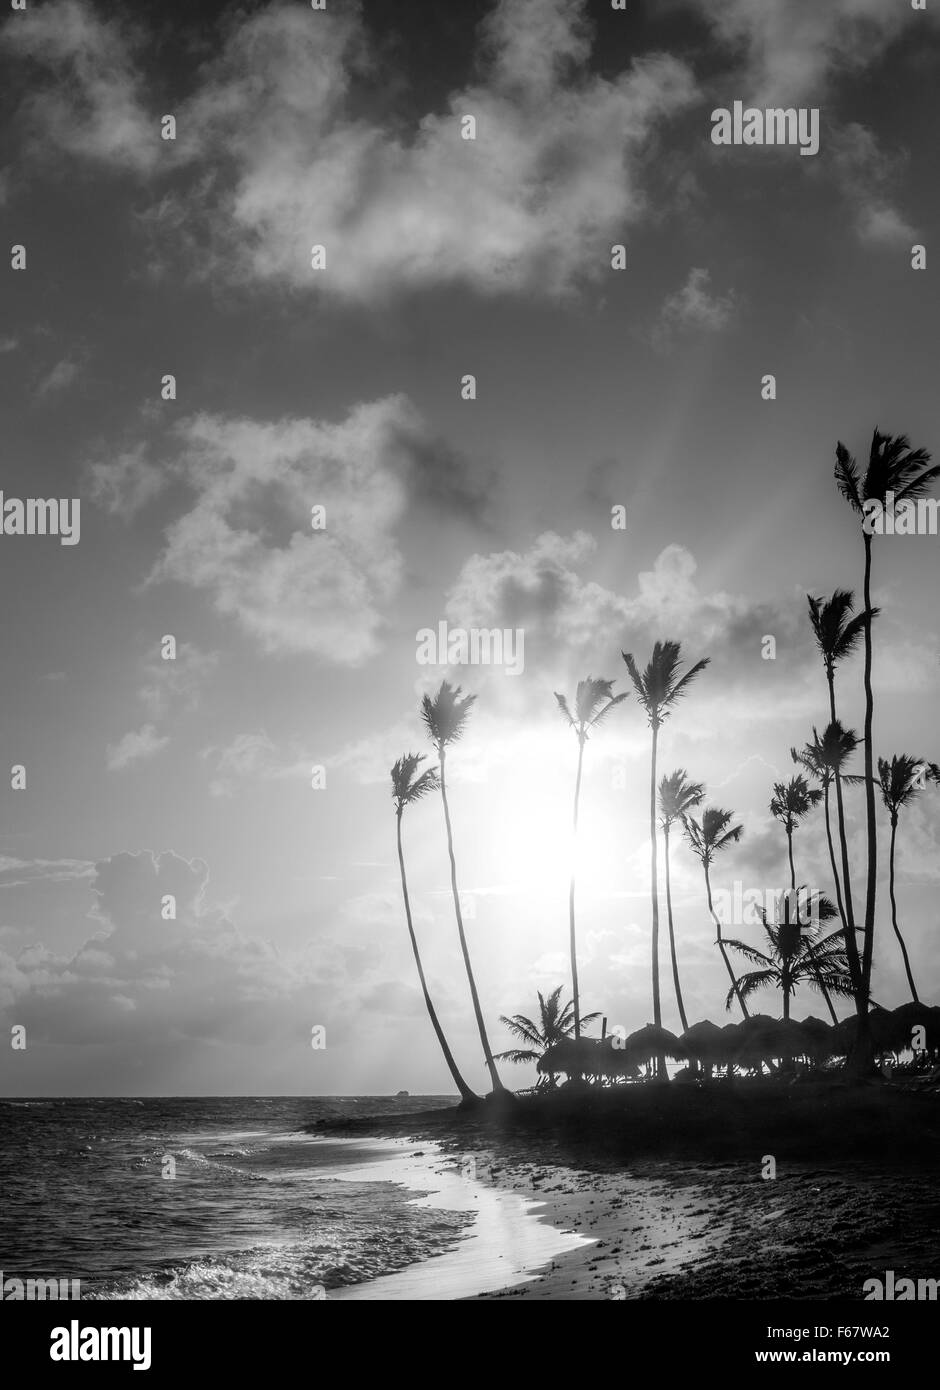 Sunrise over Caribbean sea and leaning palm trees in Dominican Republic - Stock Image